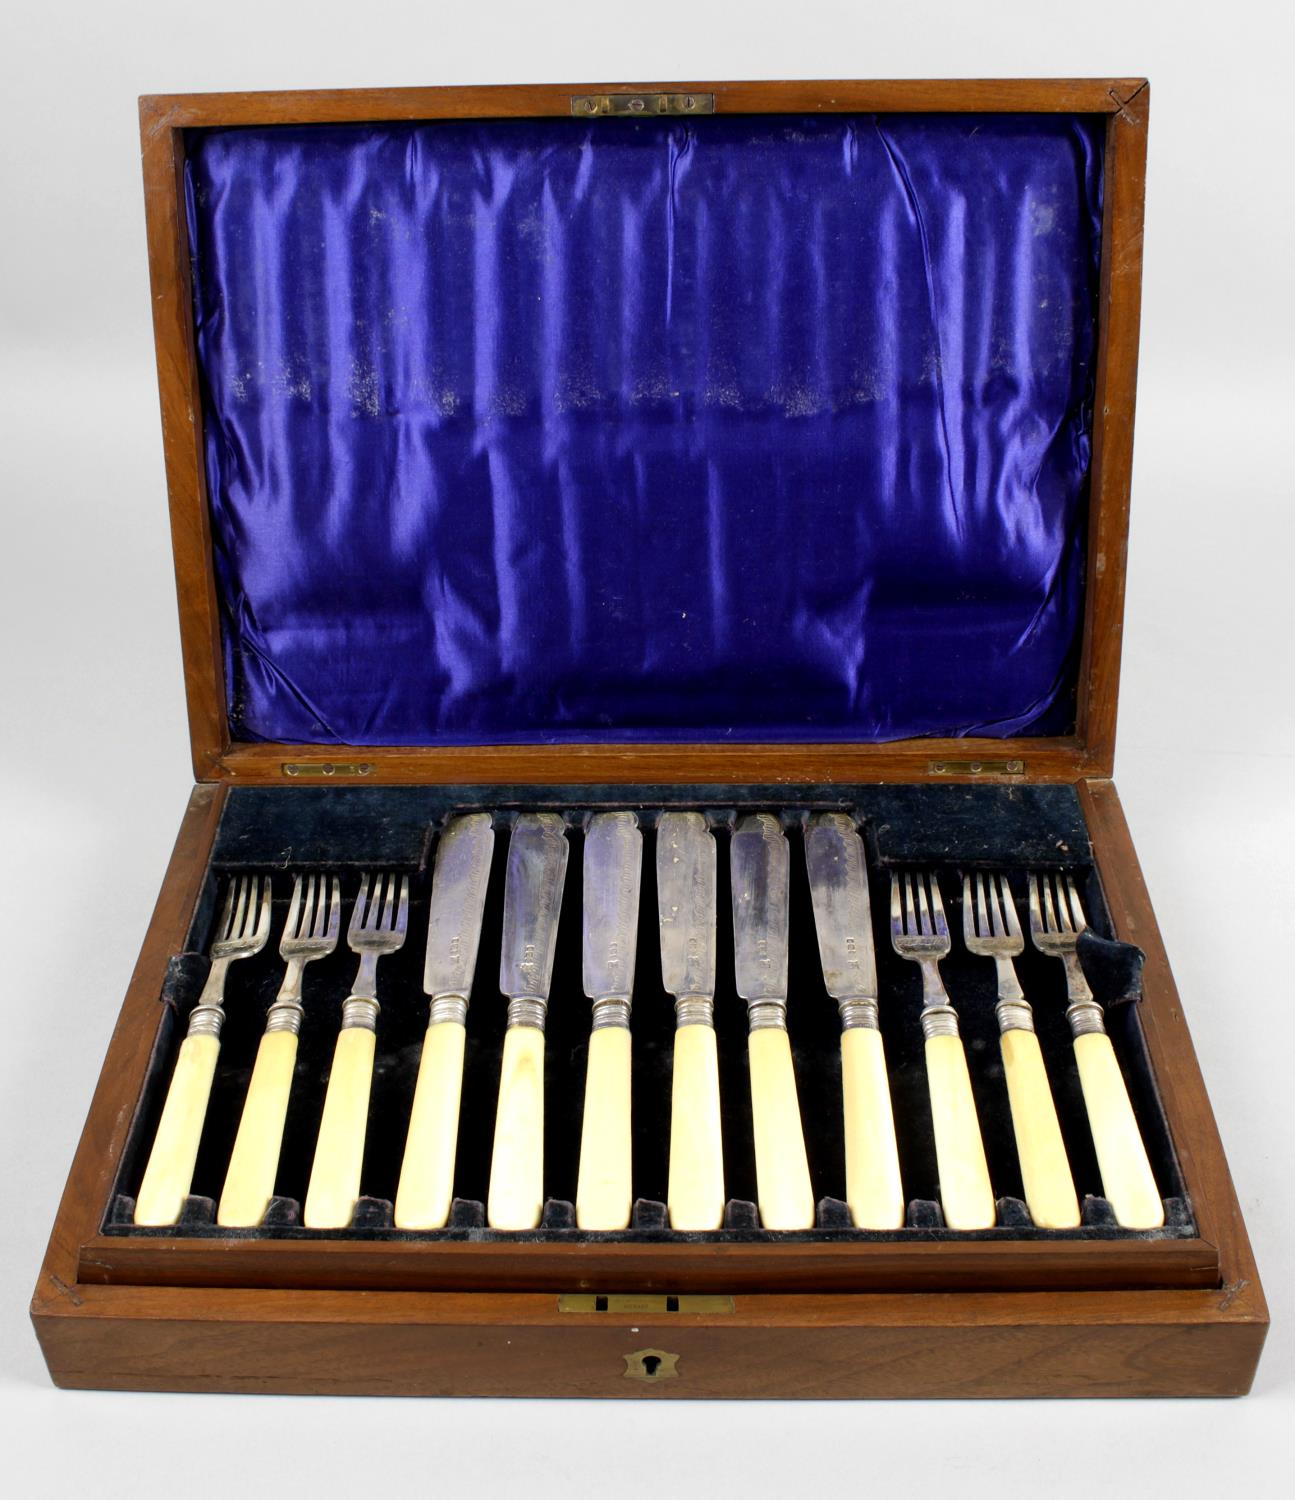 Lot 23 - A cased set of Edwardian silver and ivory-handled fish knives and forks for six place settings,